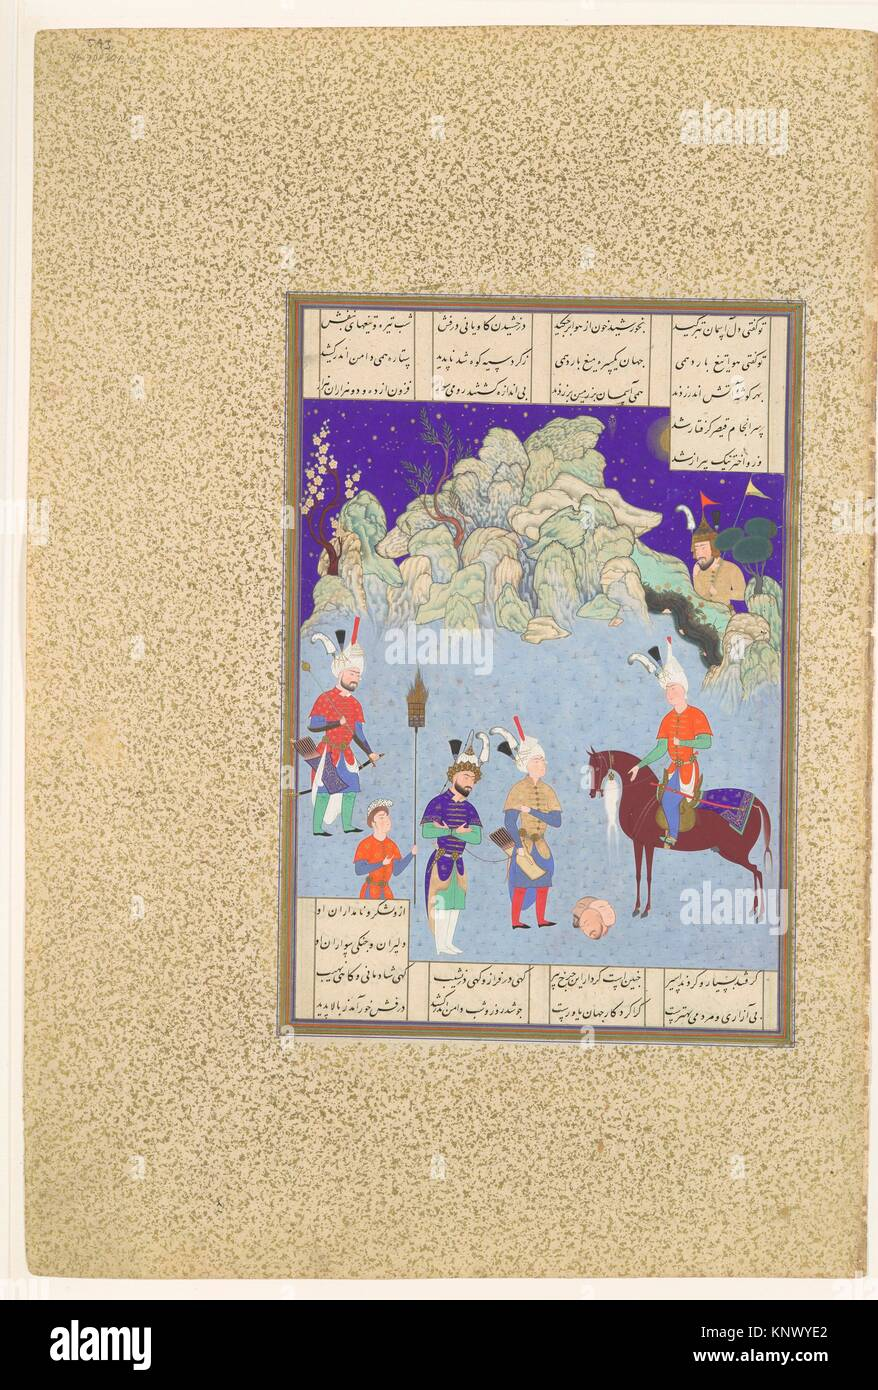 Ceasar Captive Before Shapur II, Folio 543r from the Shahnama (Book of Kings) of Shah Tahmasp. Author: Abu'l - Stock Image